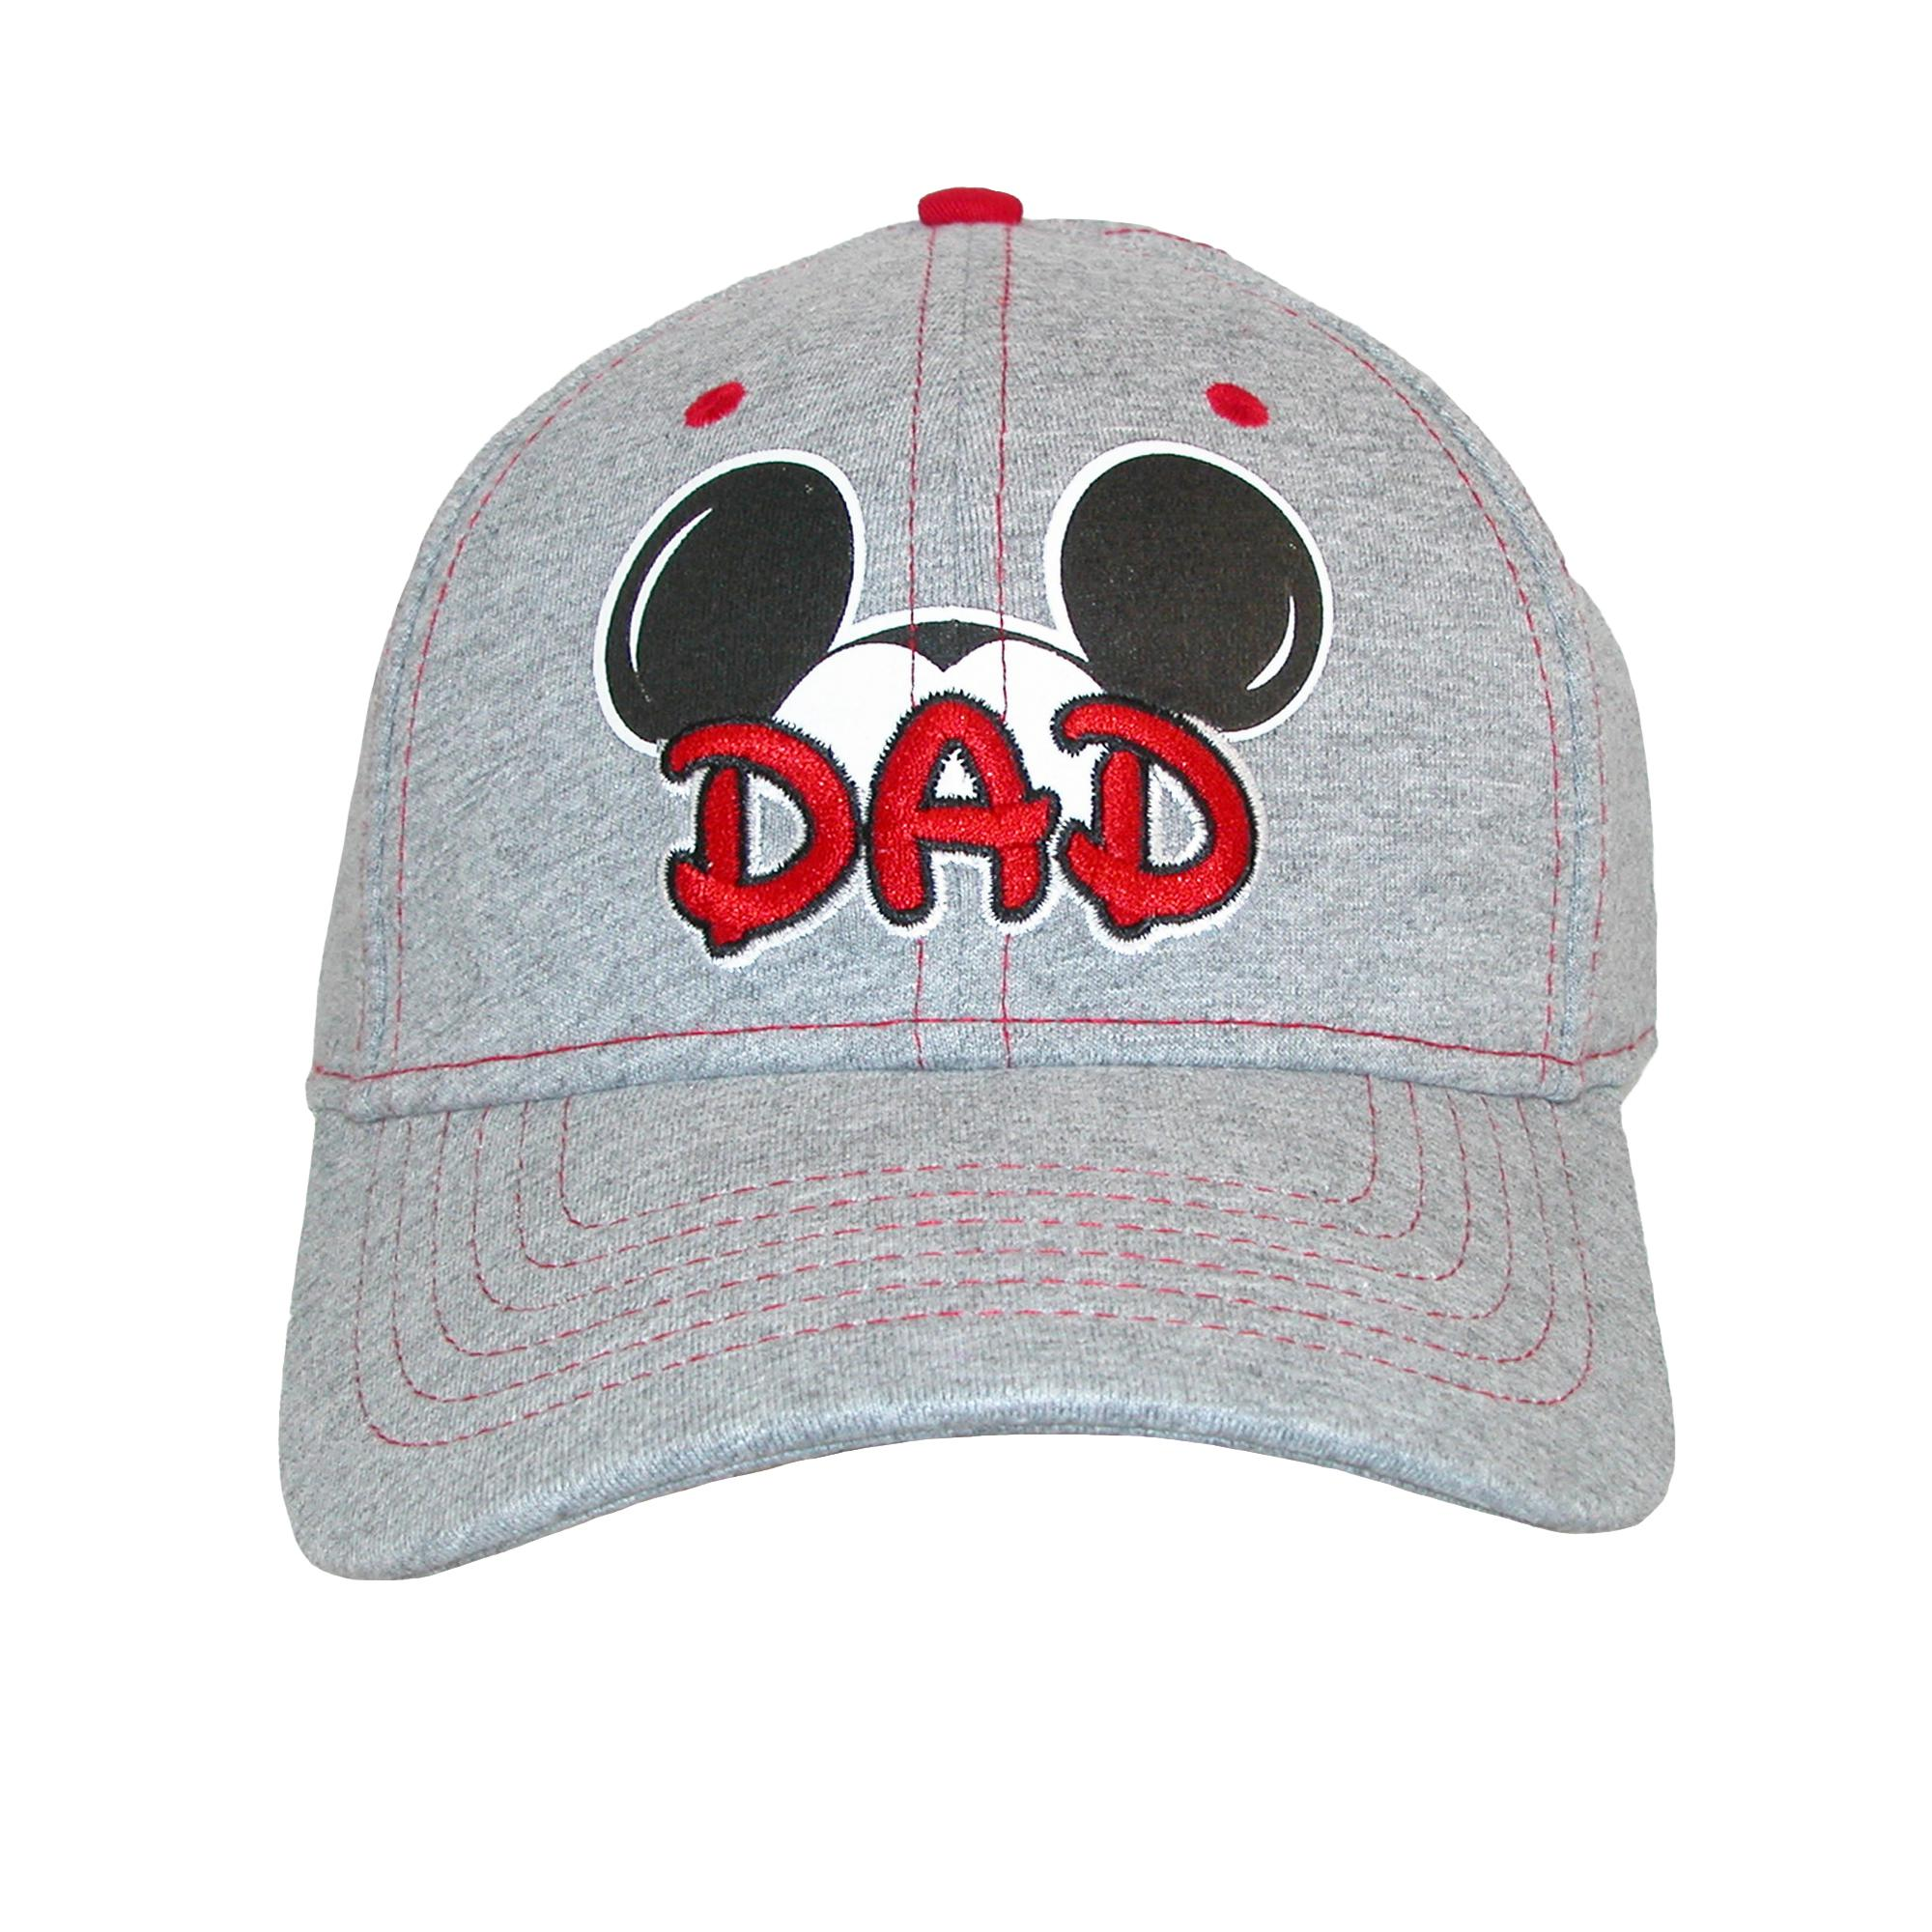 432883a90b1d5 ... australia disney mens cotton mickey mouse dad fan baseball cap 29f7a  7c13b